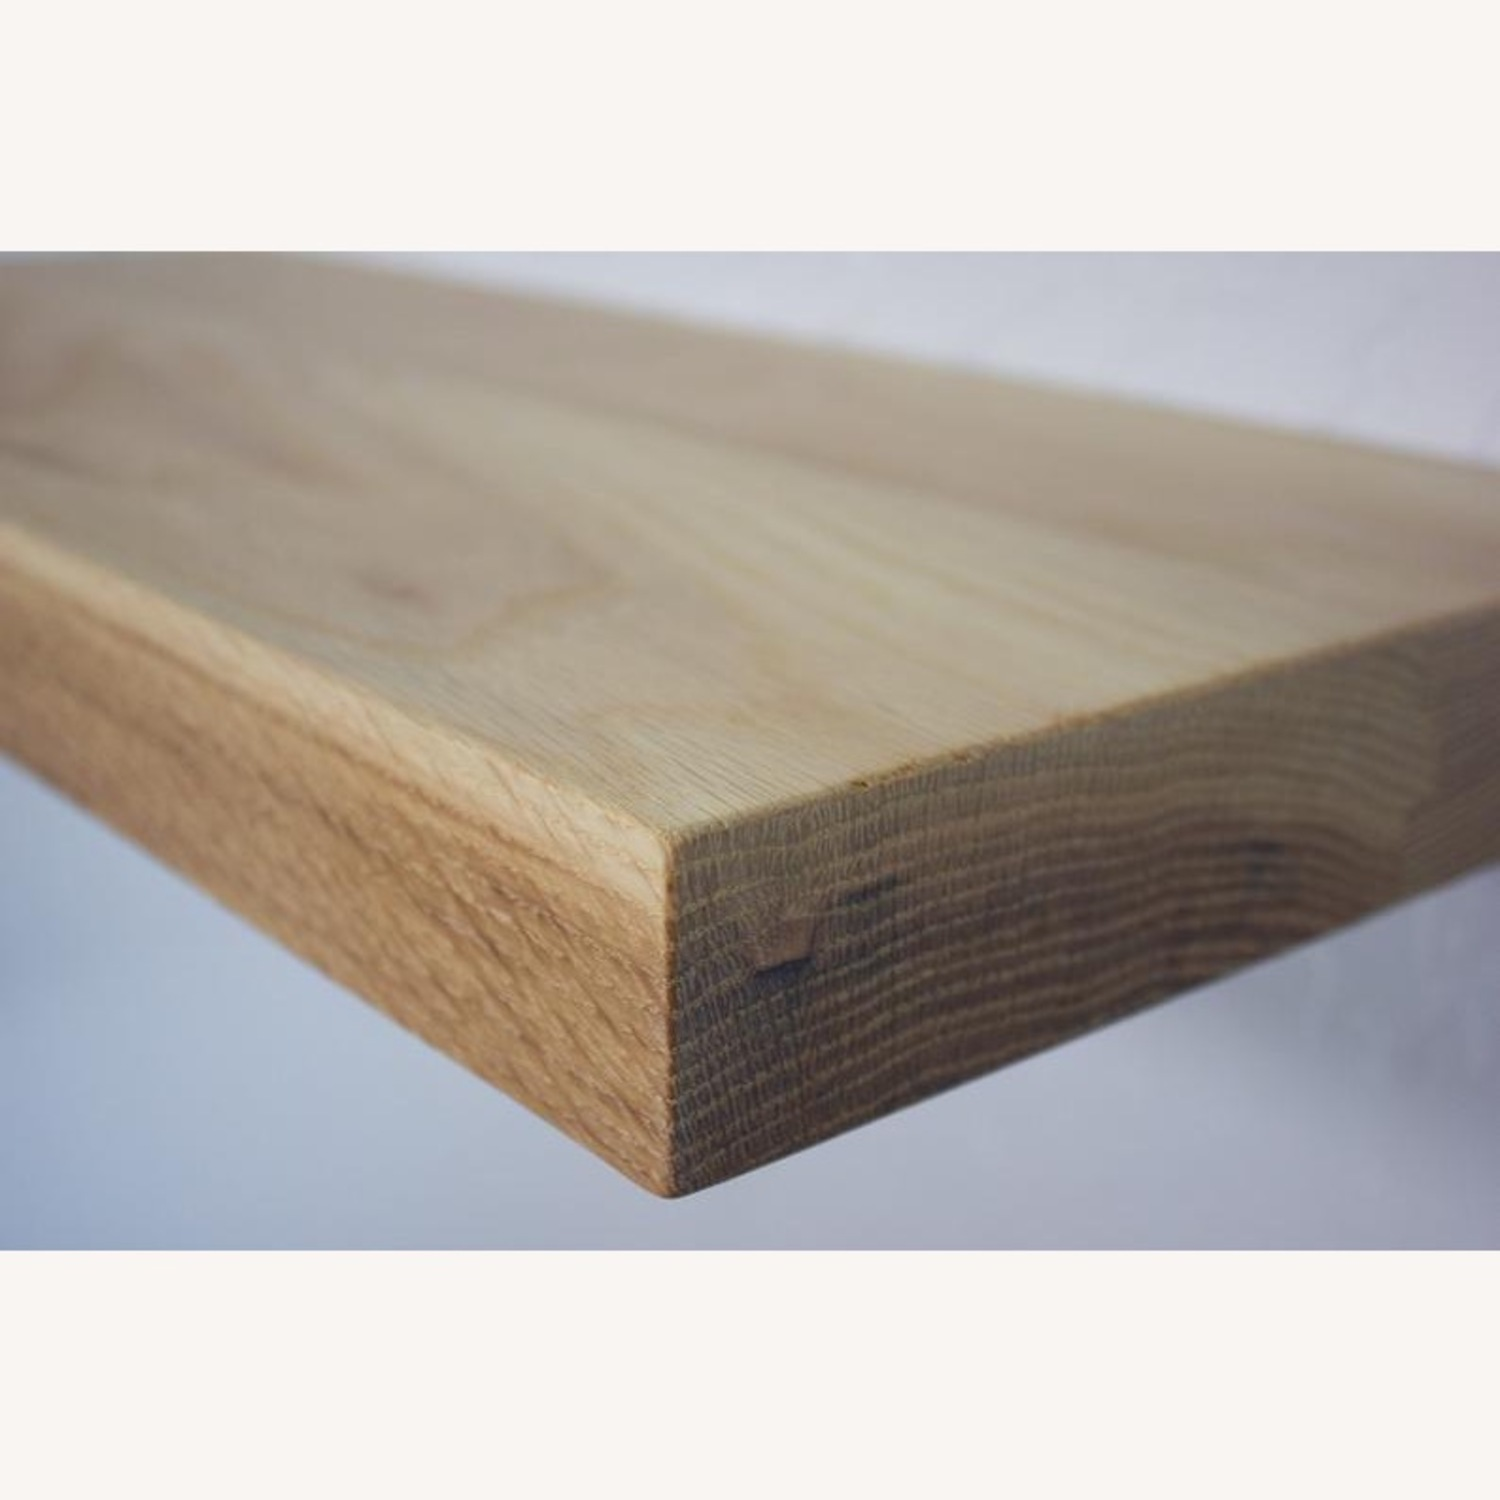 Solid Natural Oak Floating Shelves - image-1